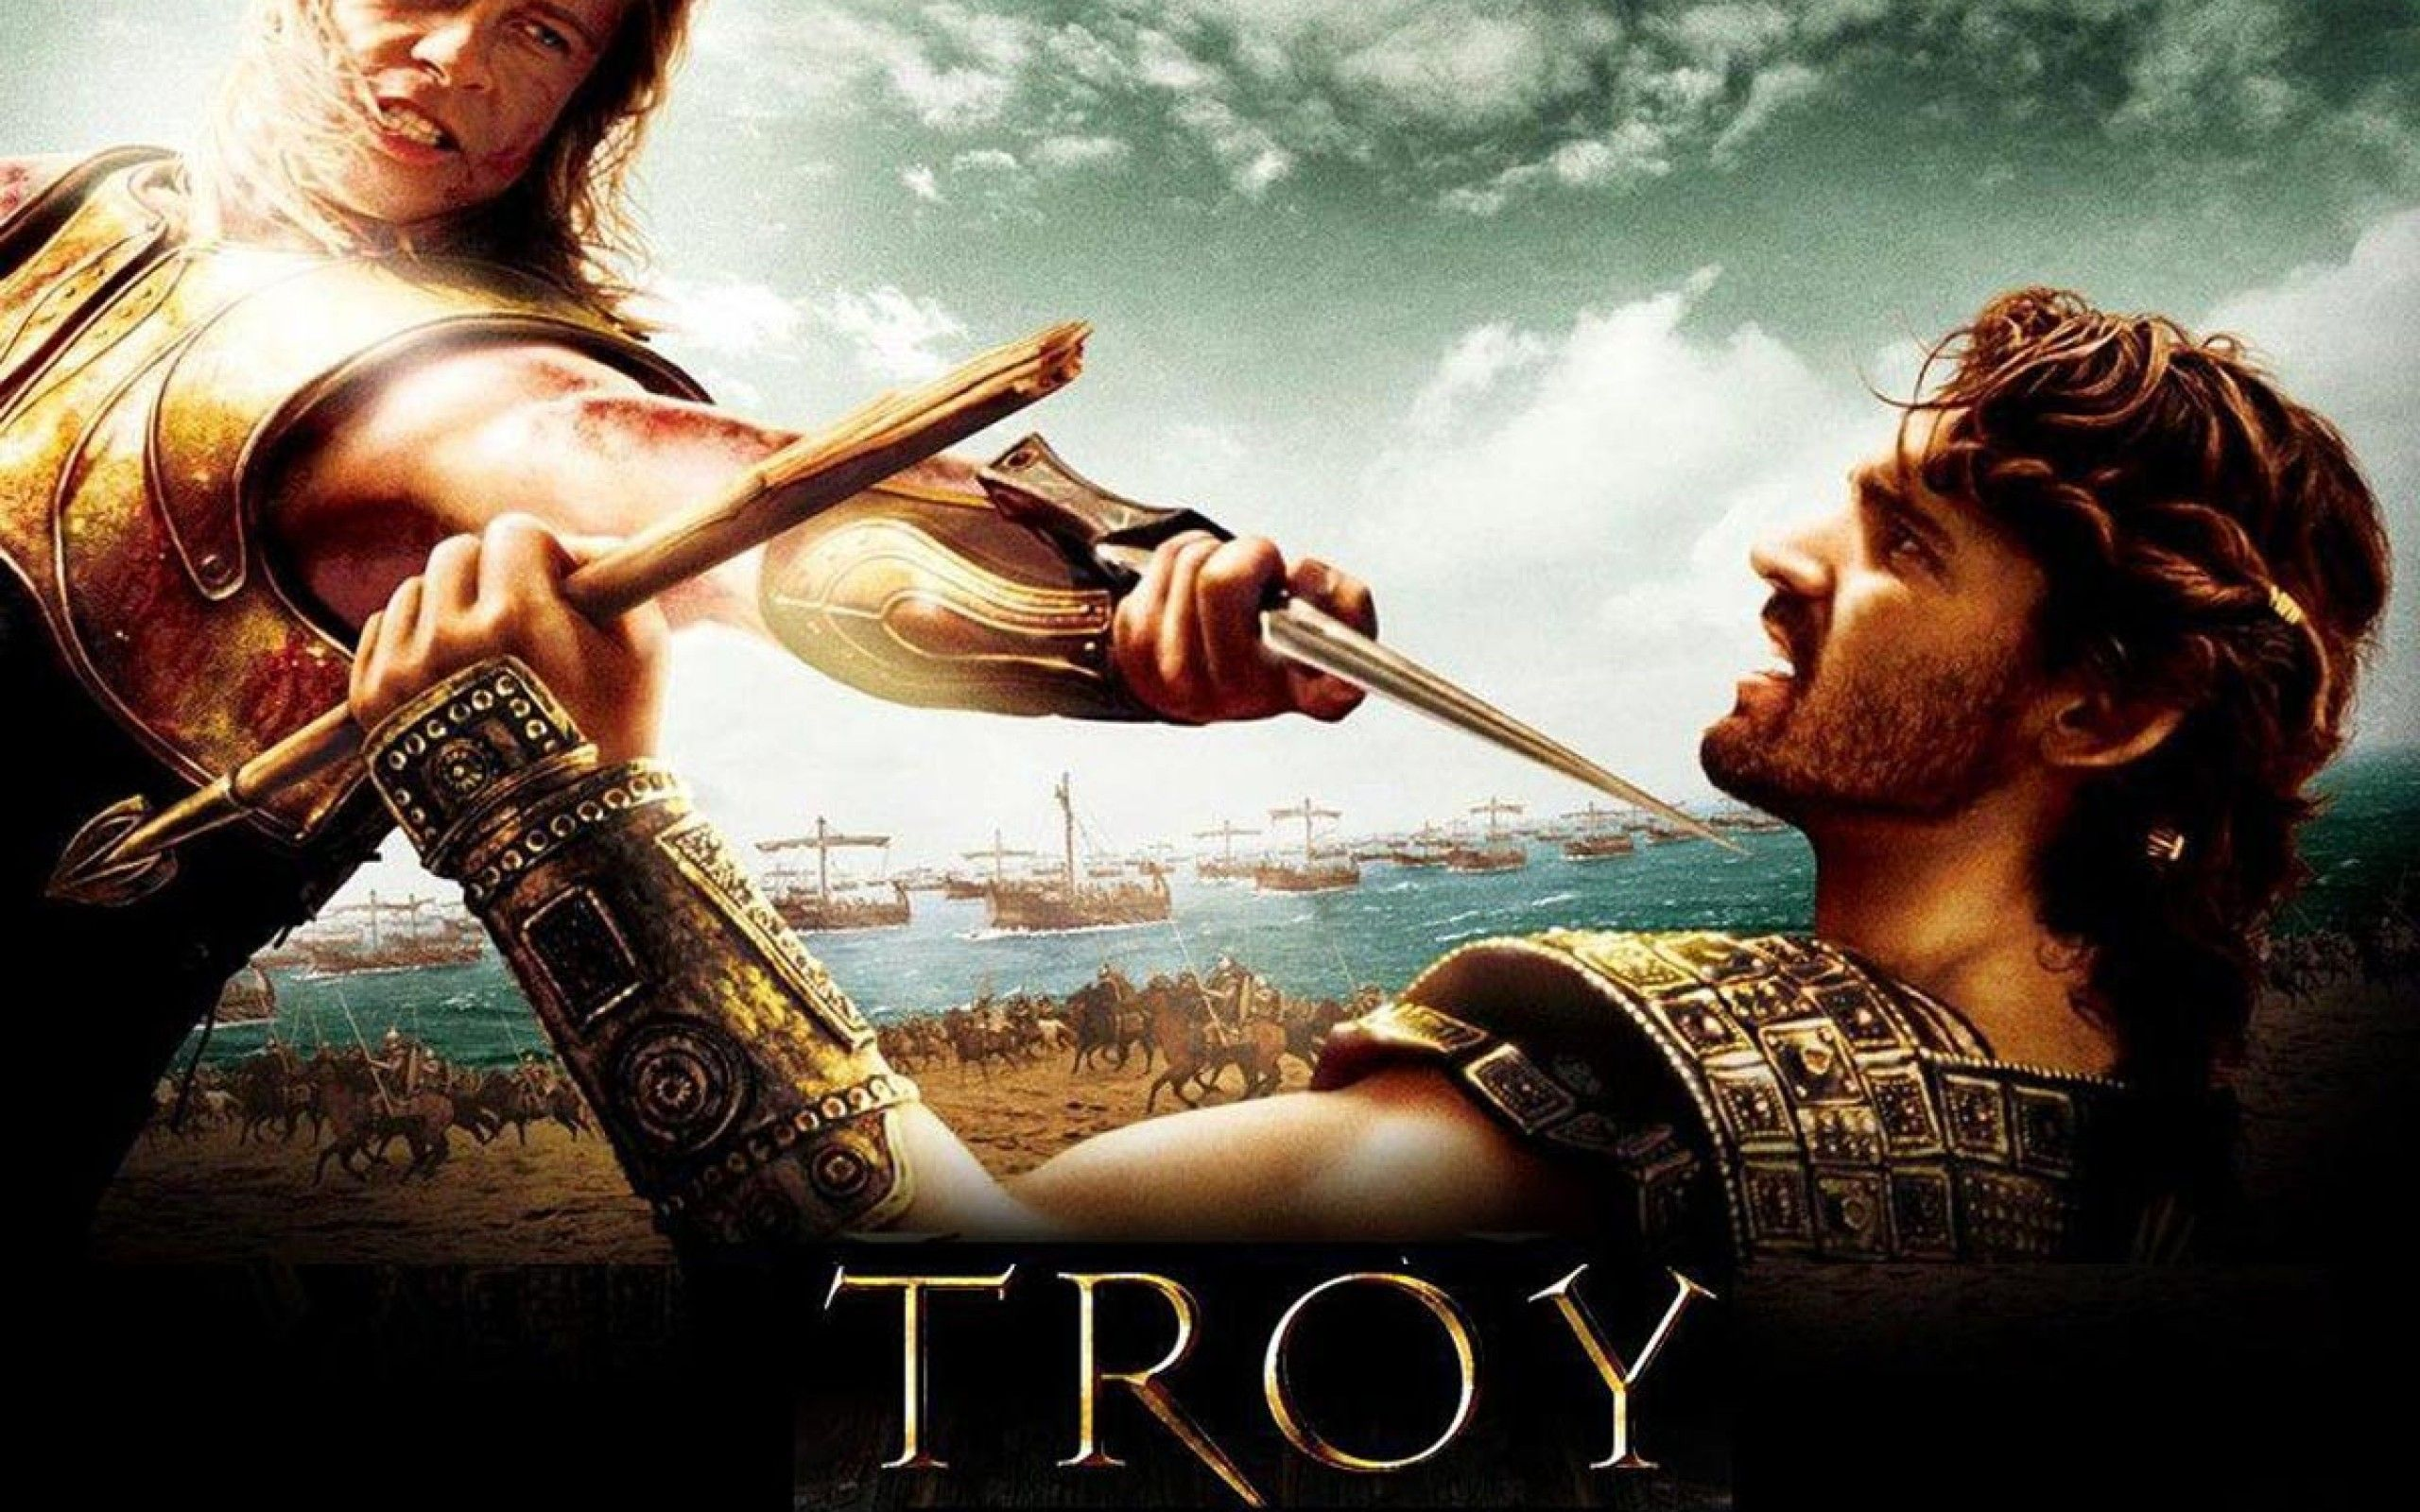 Troy Movie Wallpapers Top Free Troy Movie Backgrounds Wallpaperaccess